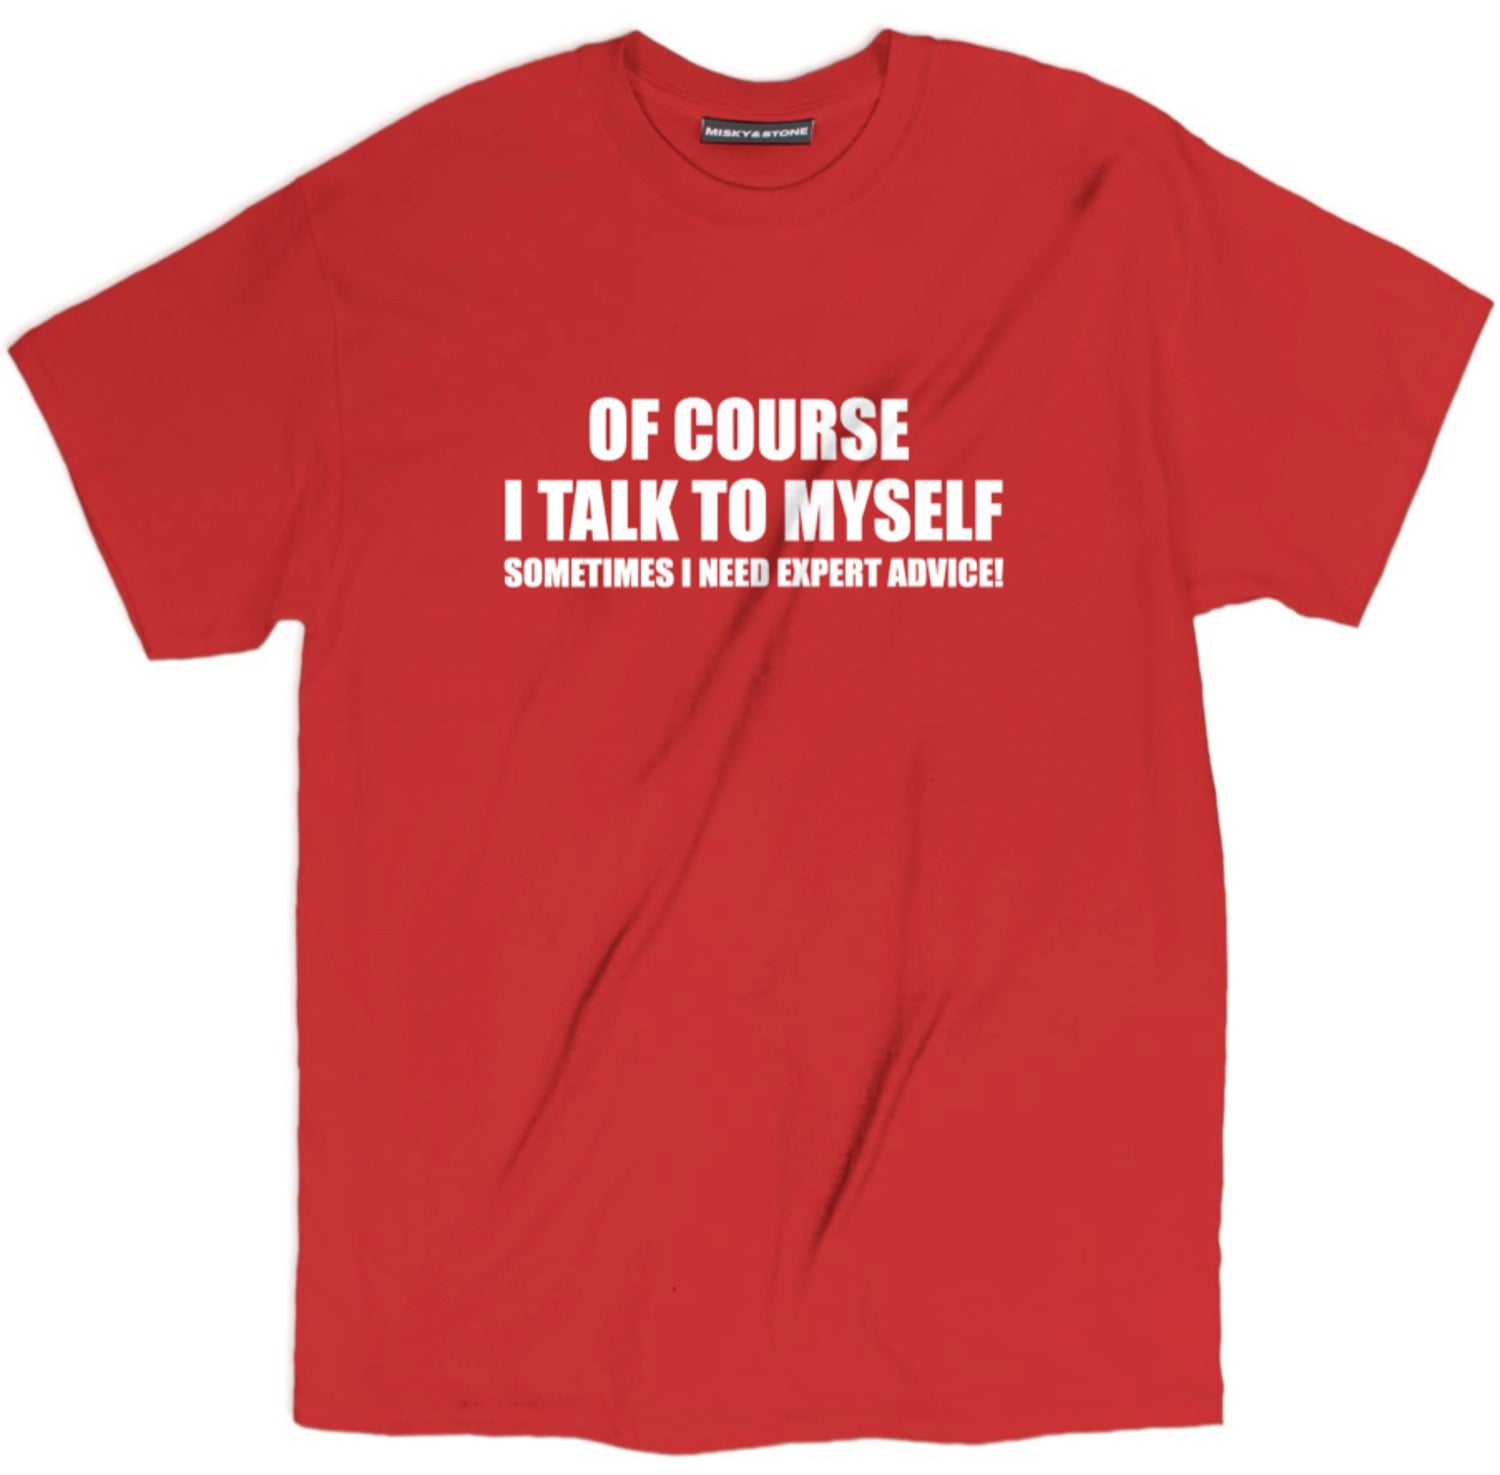 I Talk To Myself Shirt